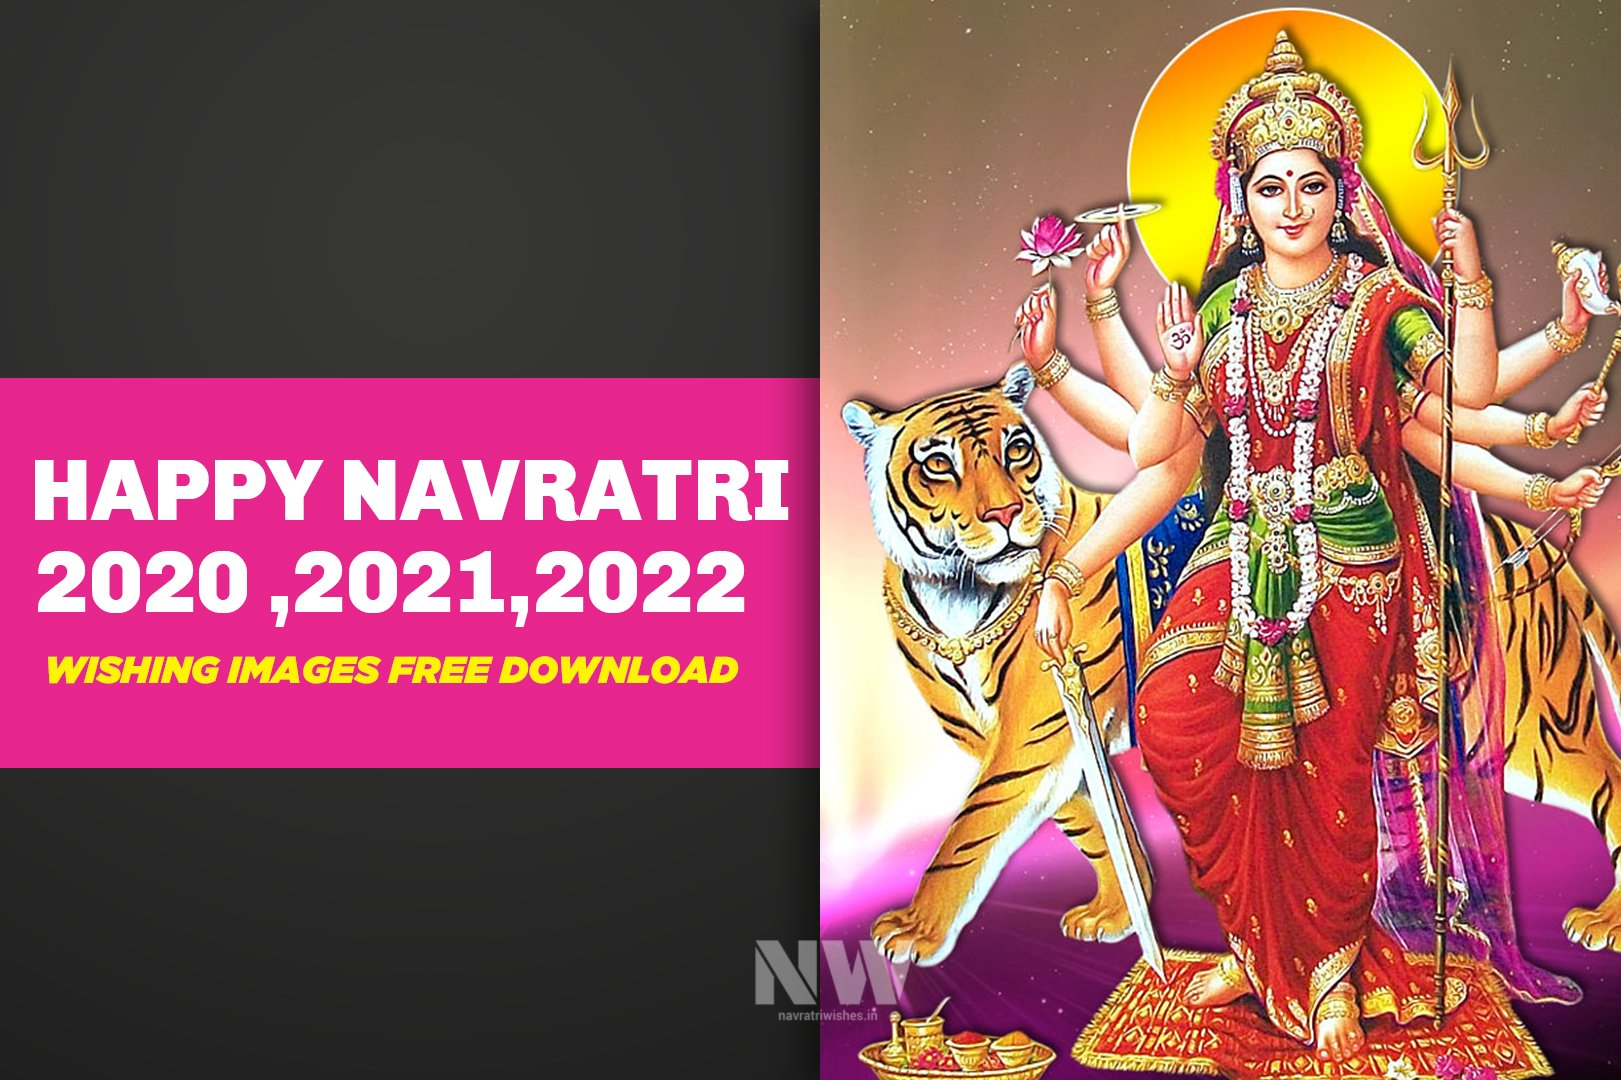 Happy Navratri 2020-2021-2022 Wishing Images free download